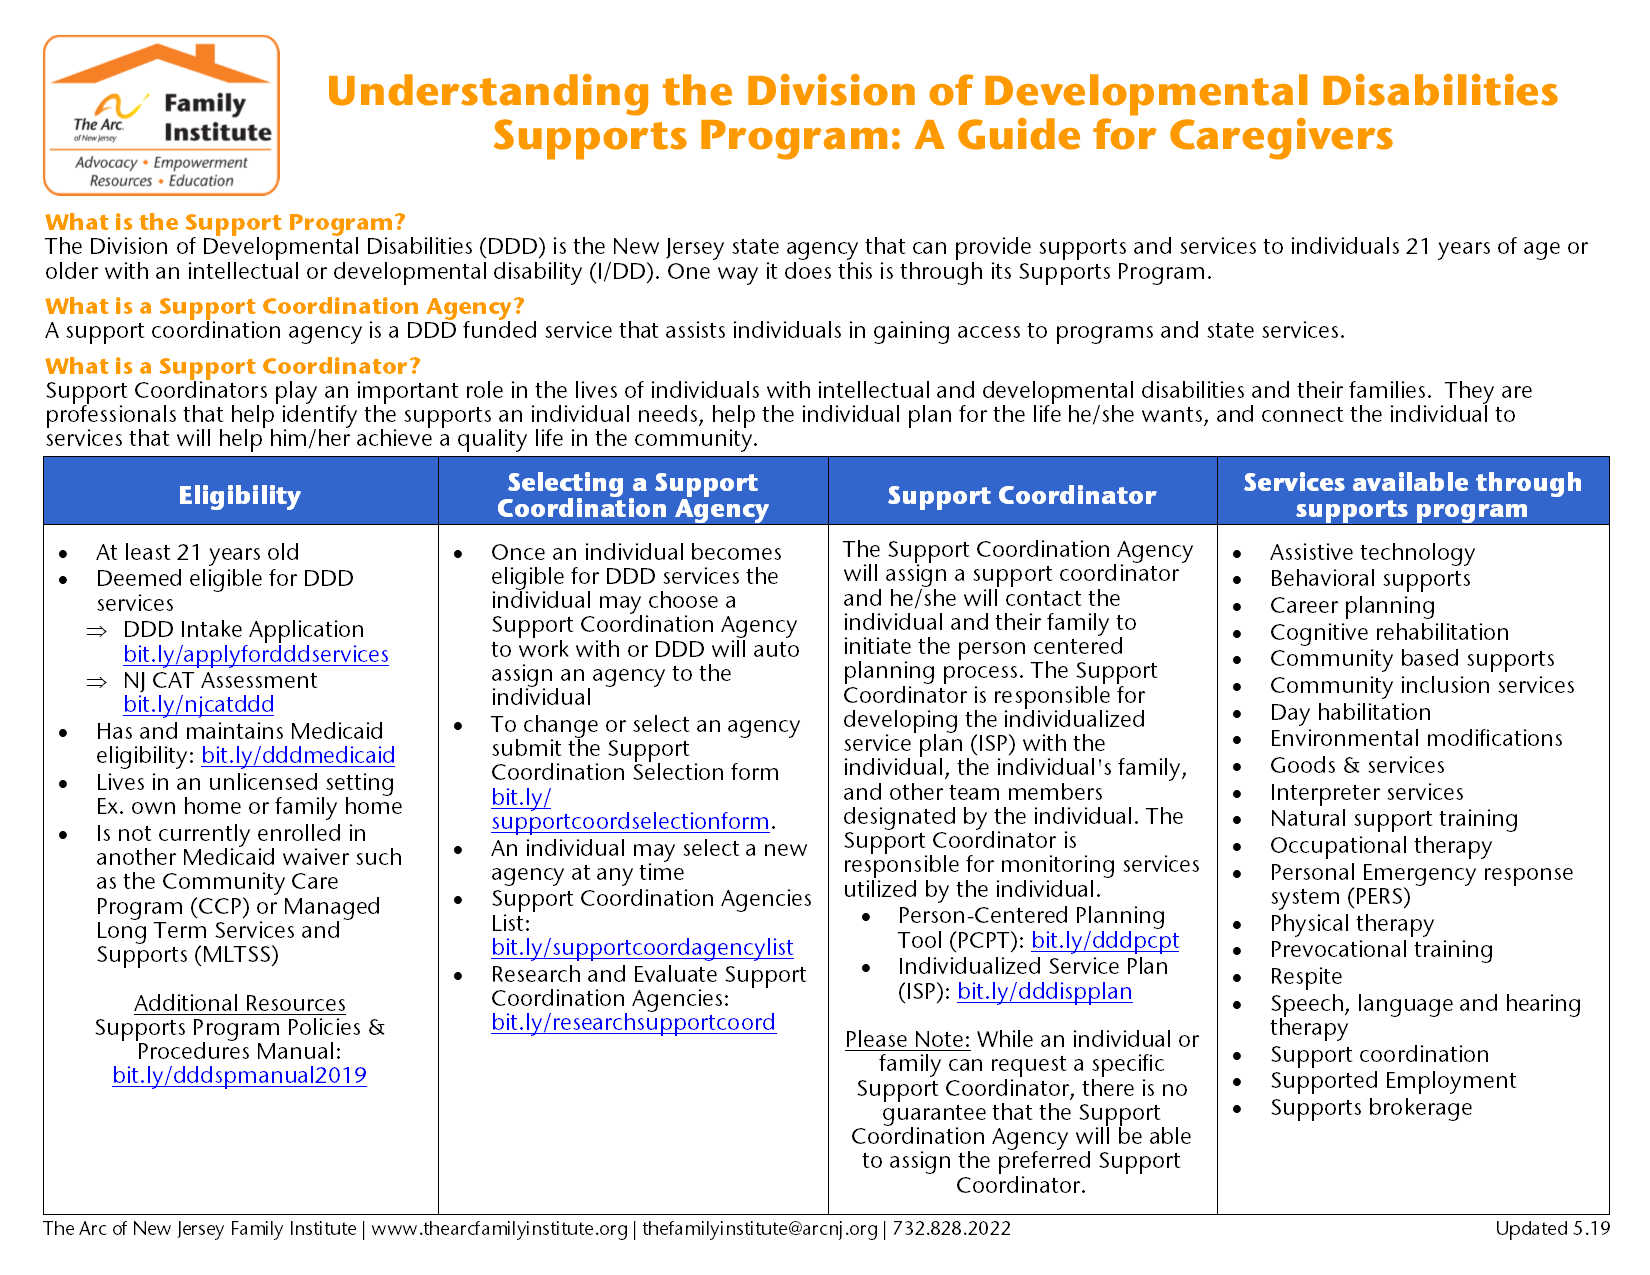 Understanding the Division of Developmental Disabilities Supports Program: A Guide for Caregivers